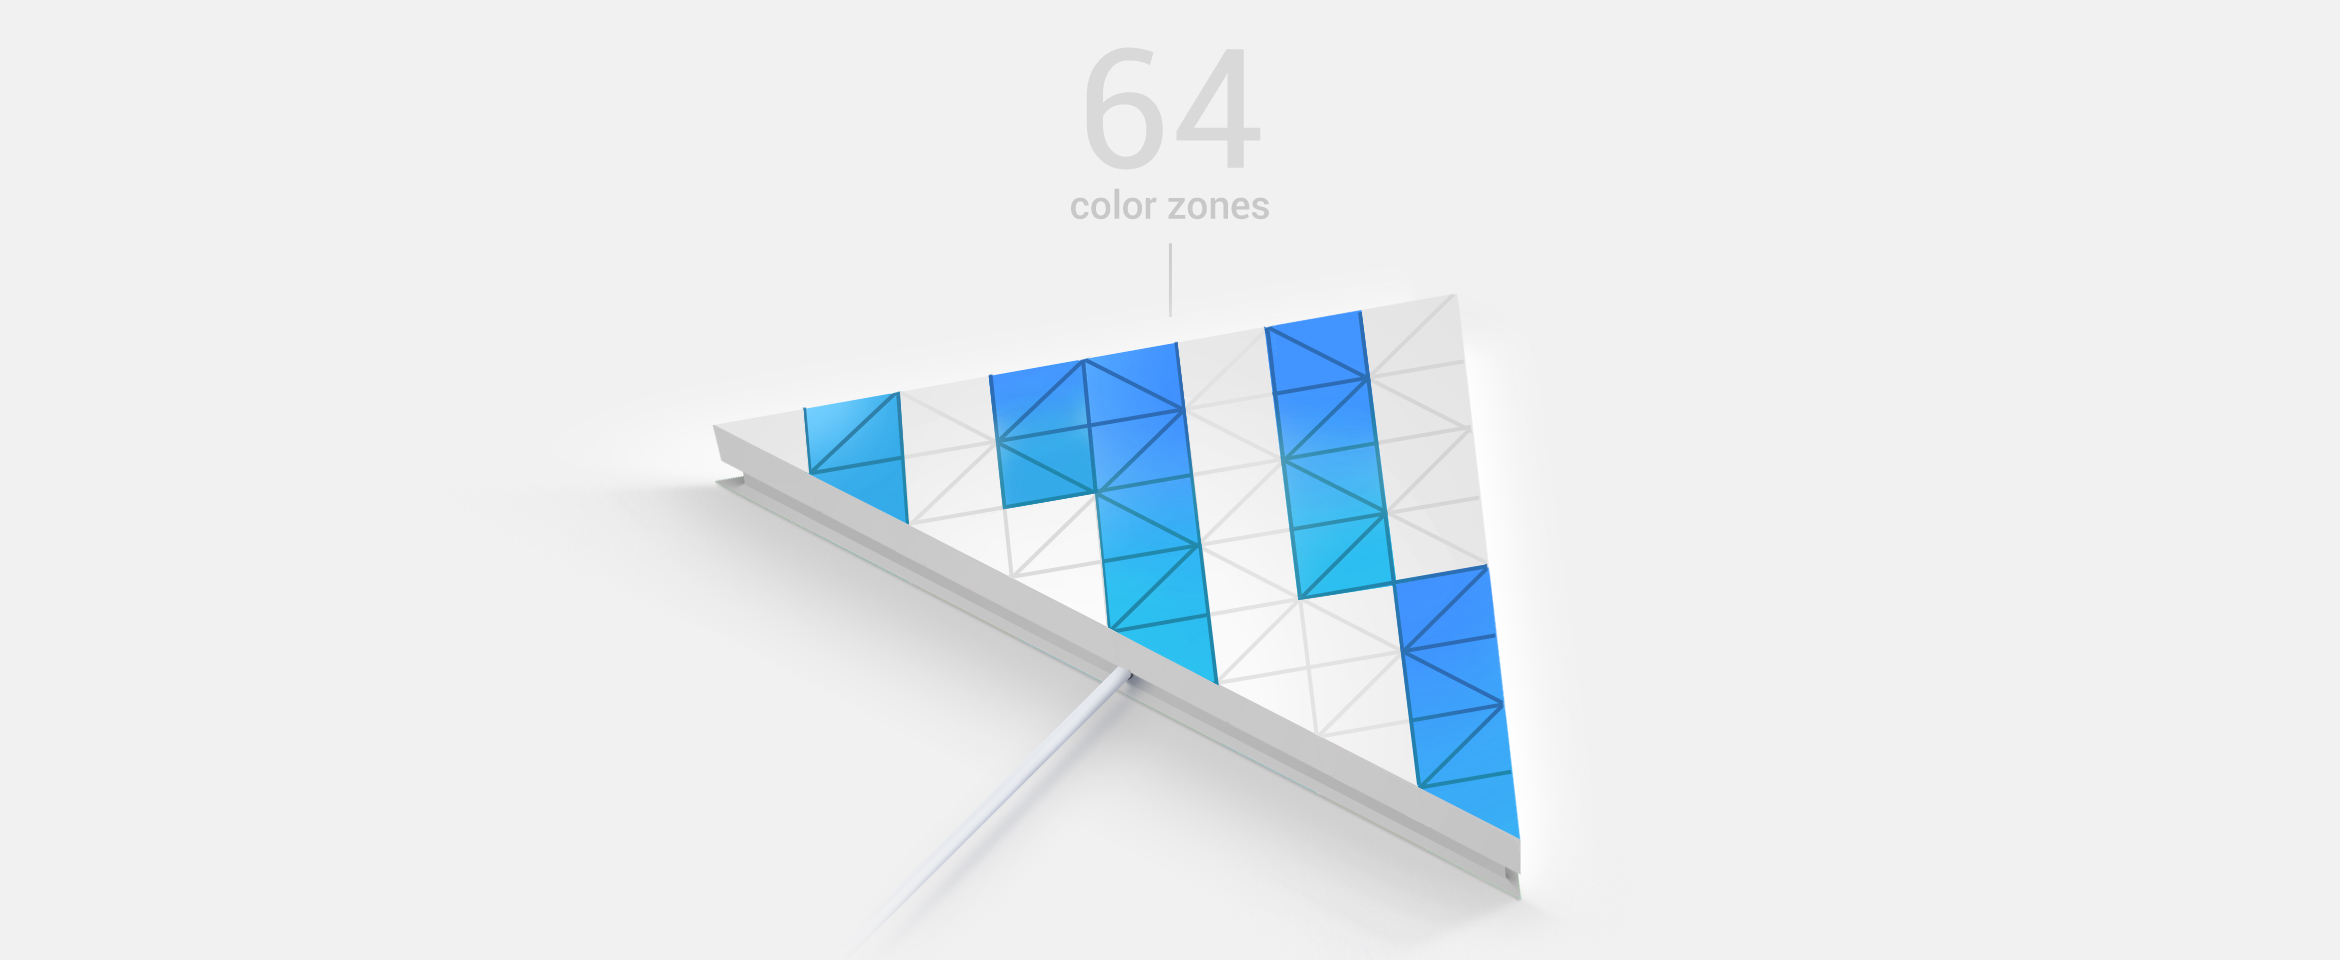 LaMetric SKY smart light surface with 64 color zones